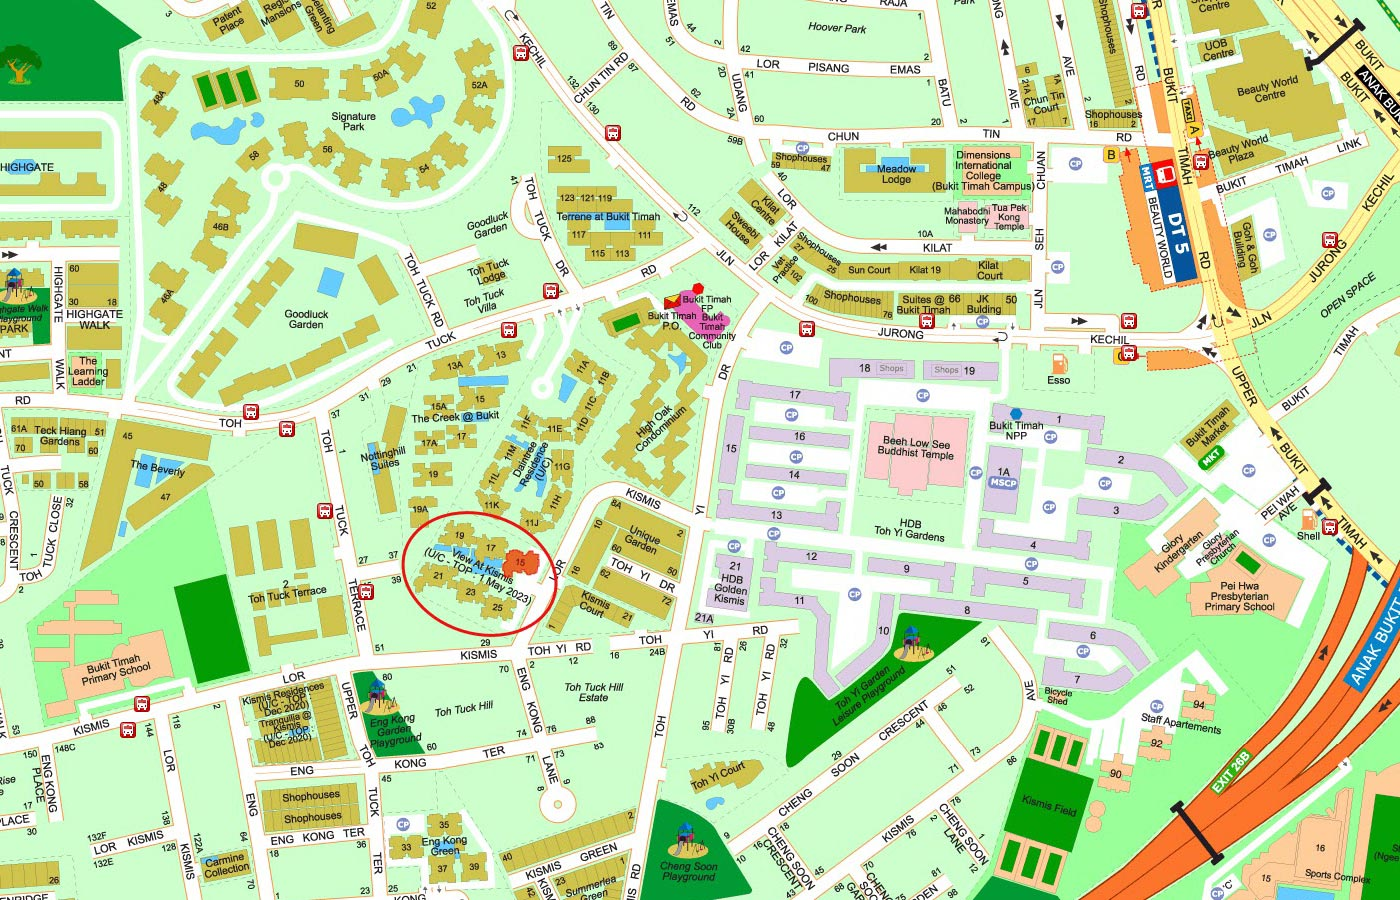 View-at-Kismis-Condo-Street-Directory-Map